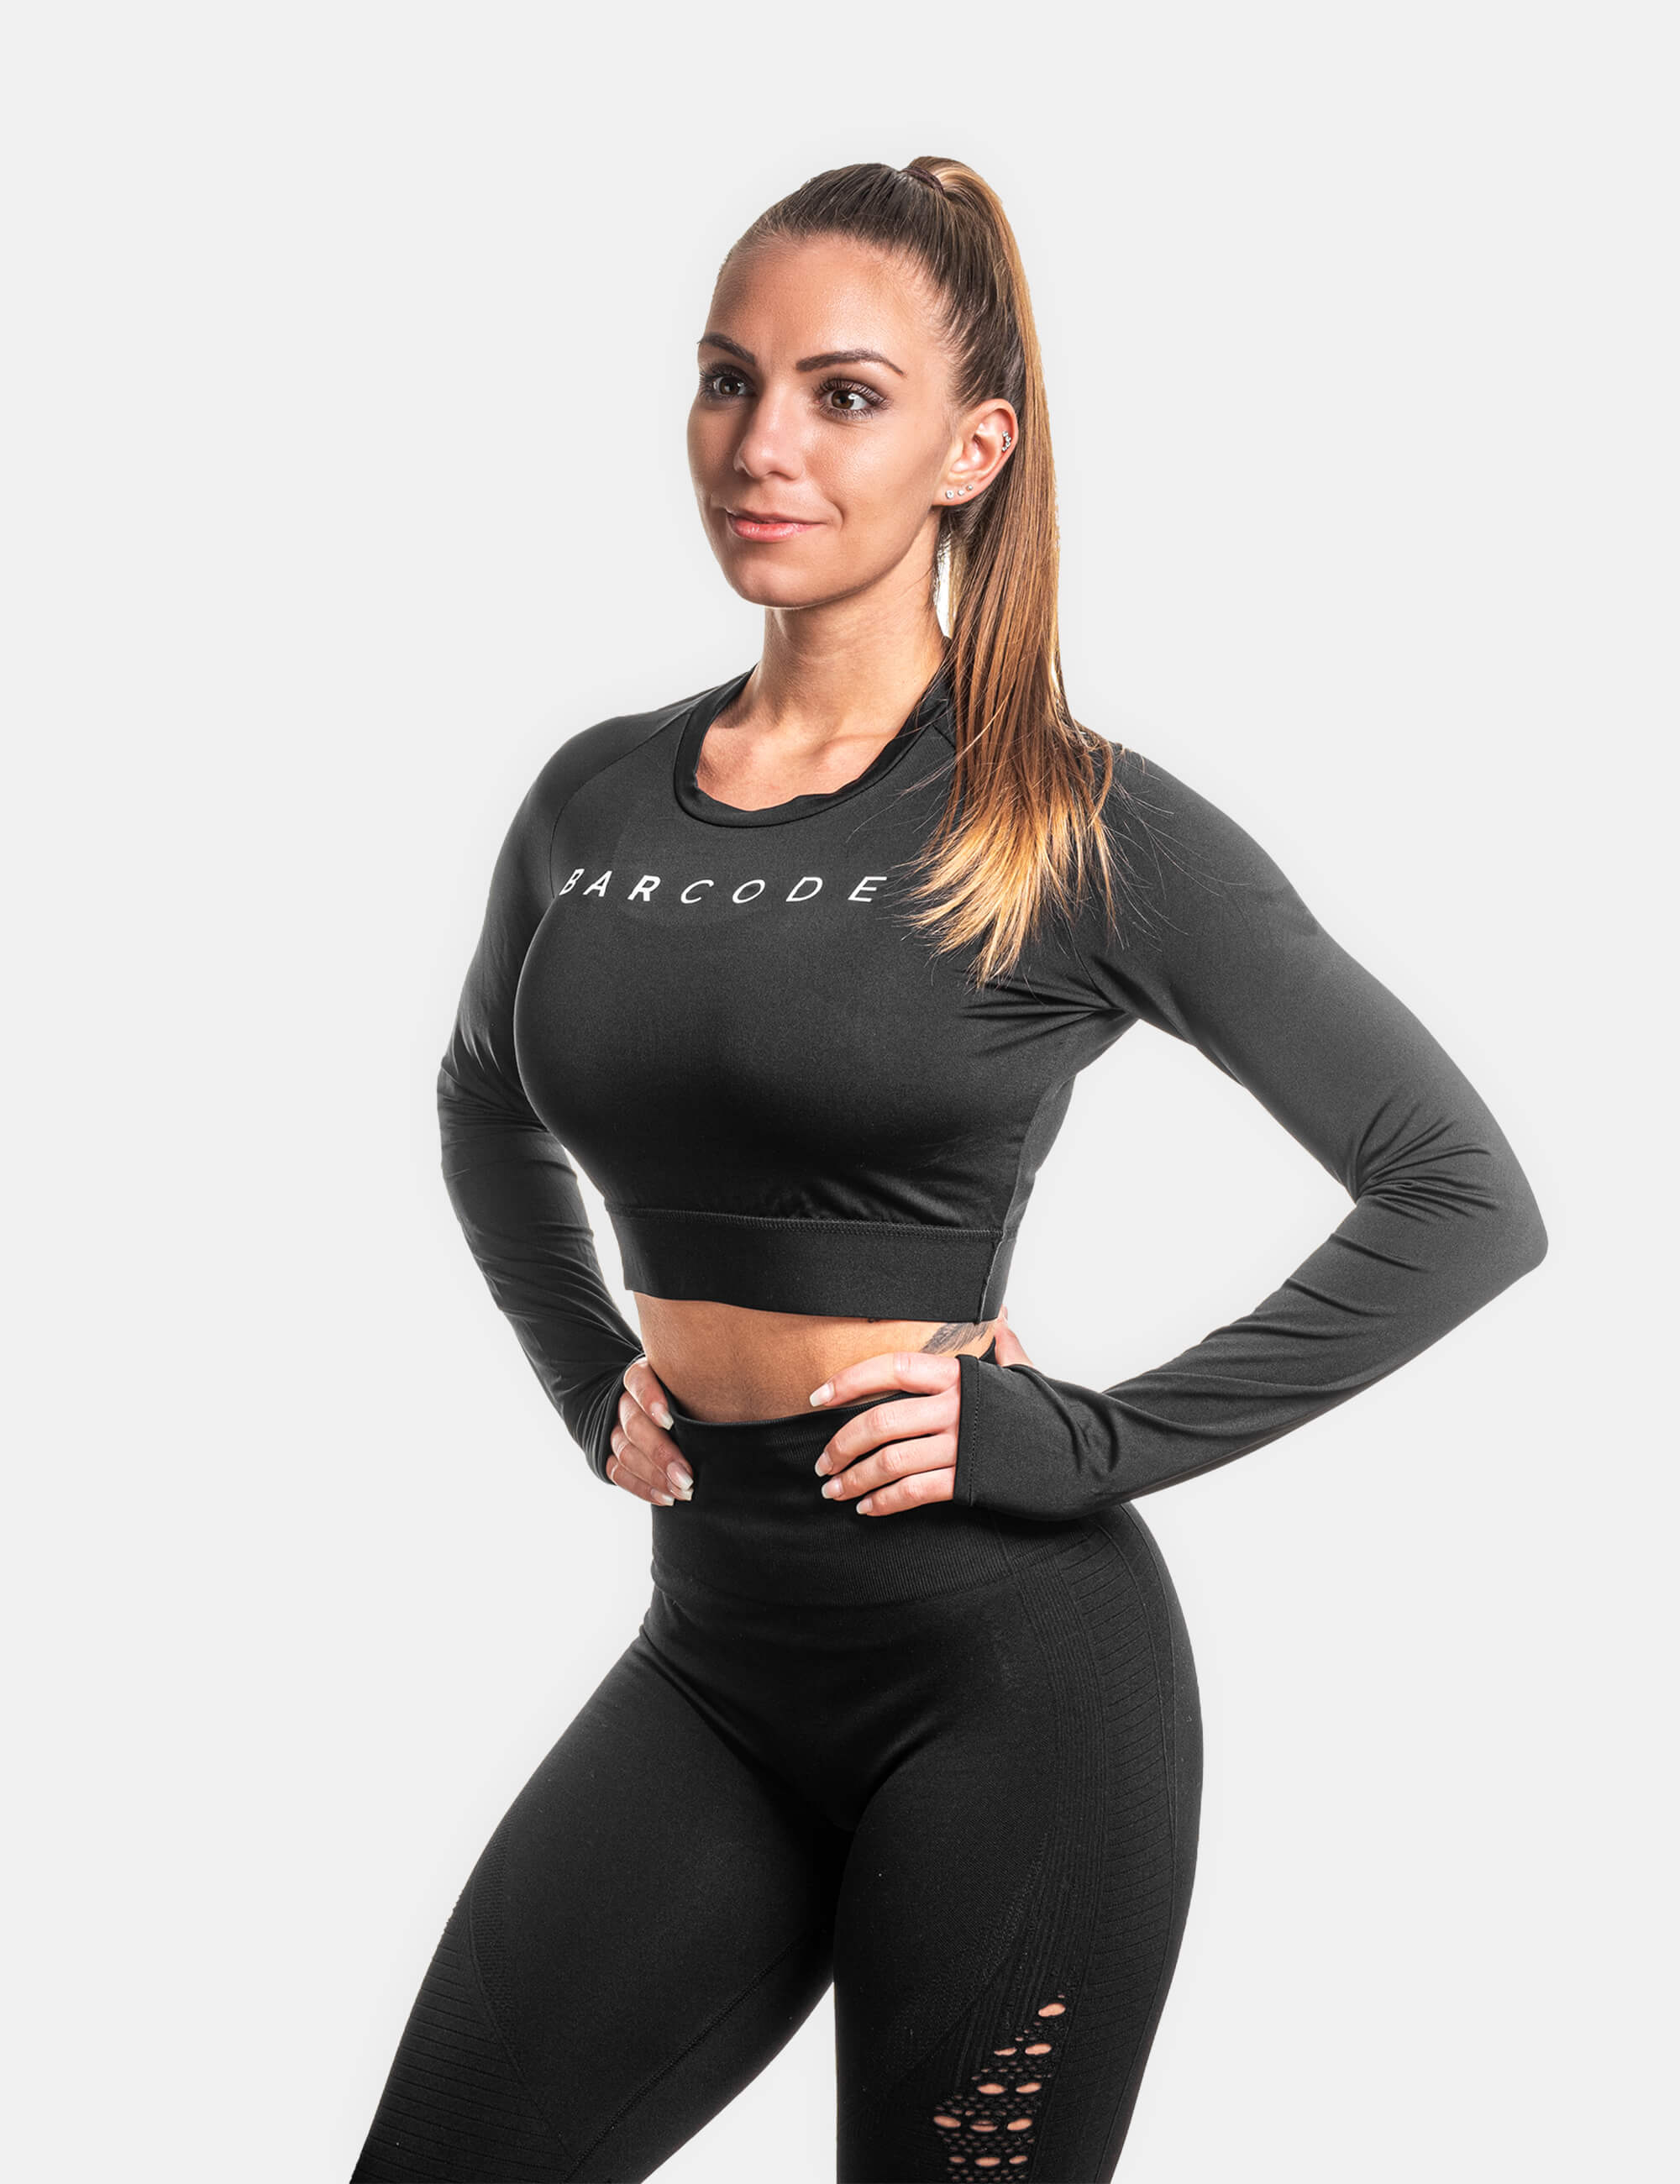 "Woman Crop Top worn by Female Calisthenics athlete. Showing the Text ""Barcode"" at the front."